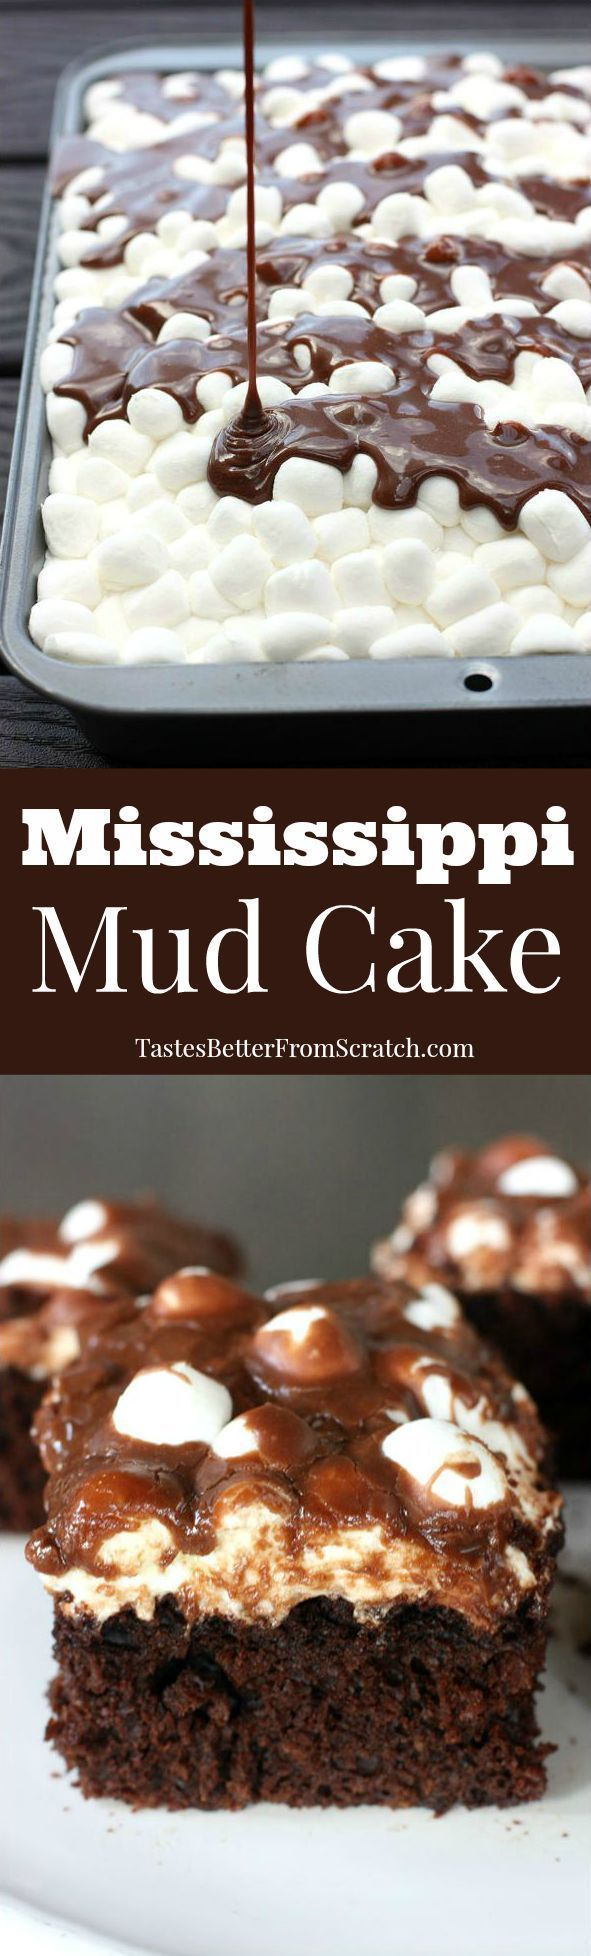 Mississippi Mud Cake | Recipe | Chocolate cakes, Homemade ...